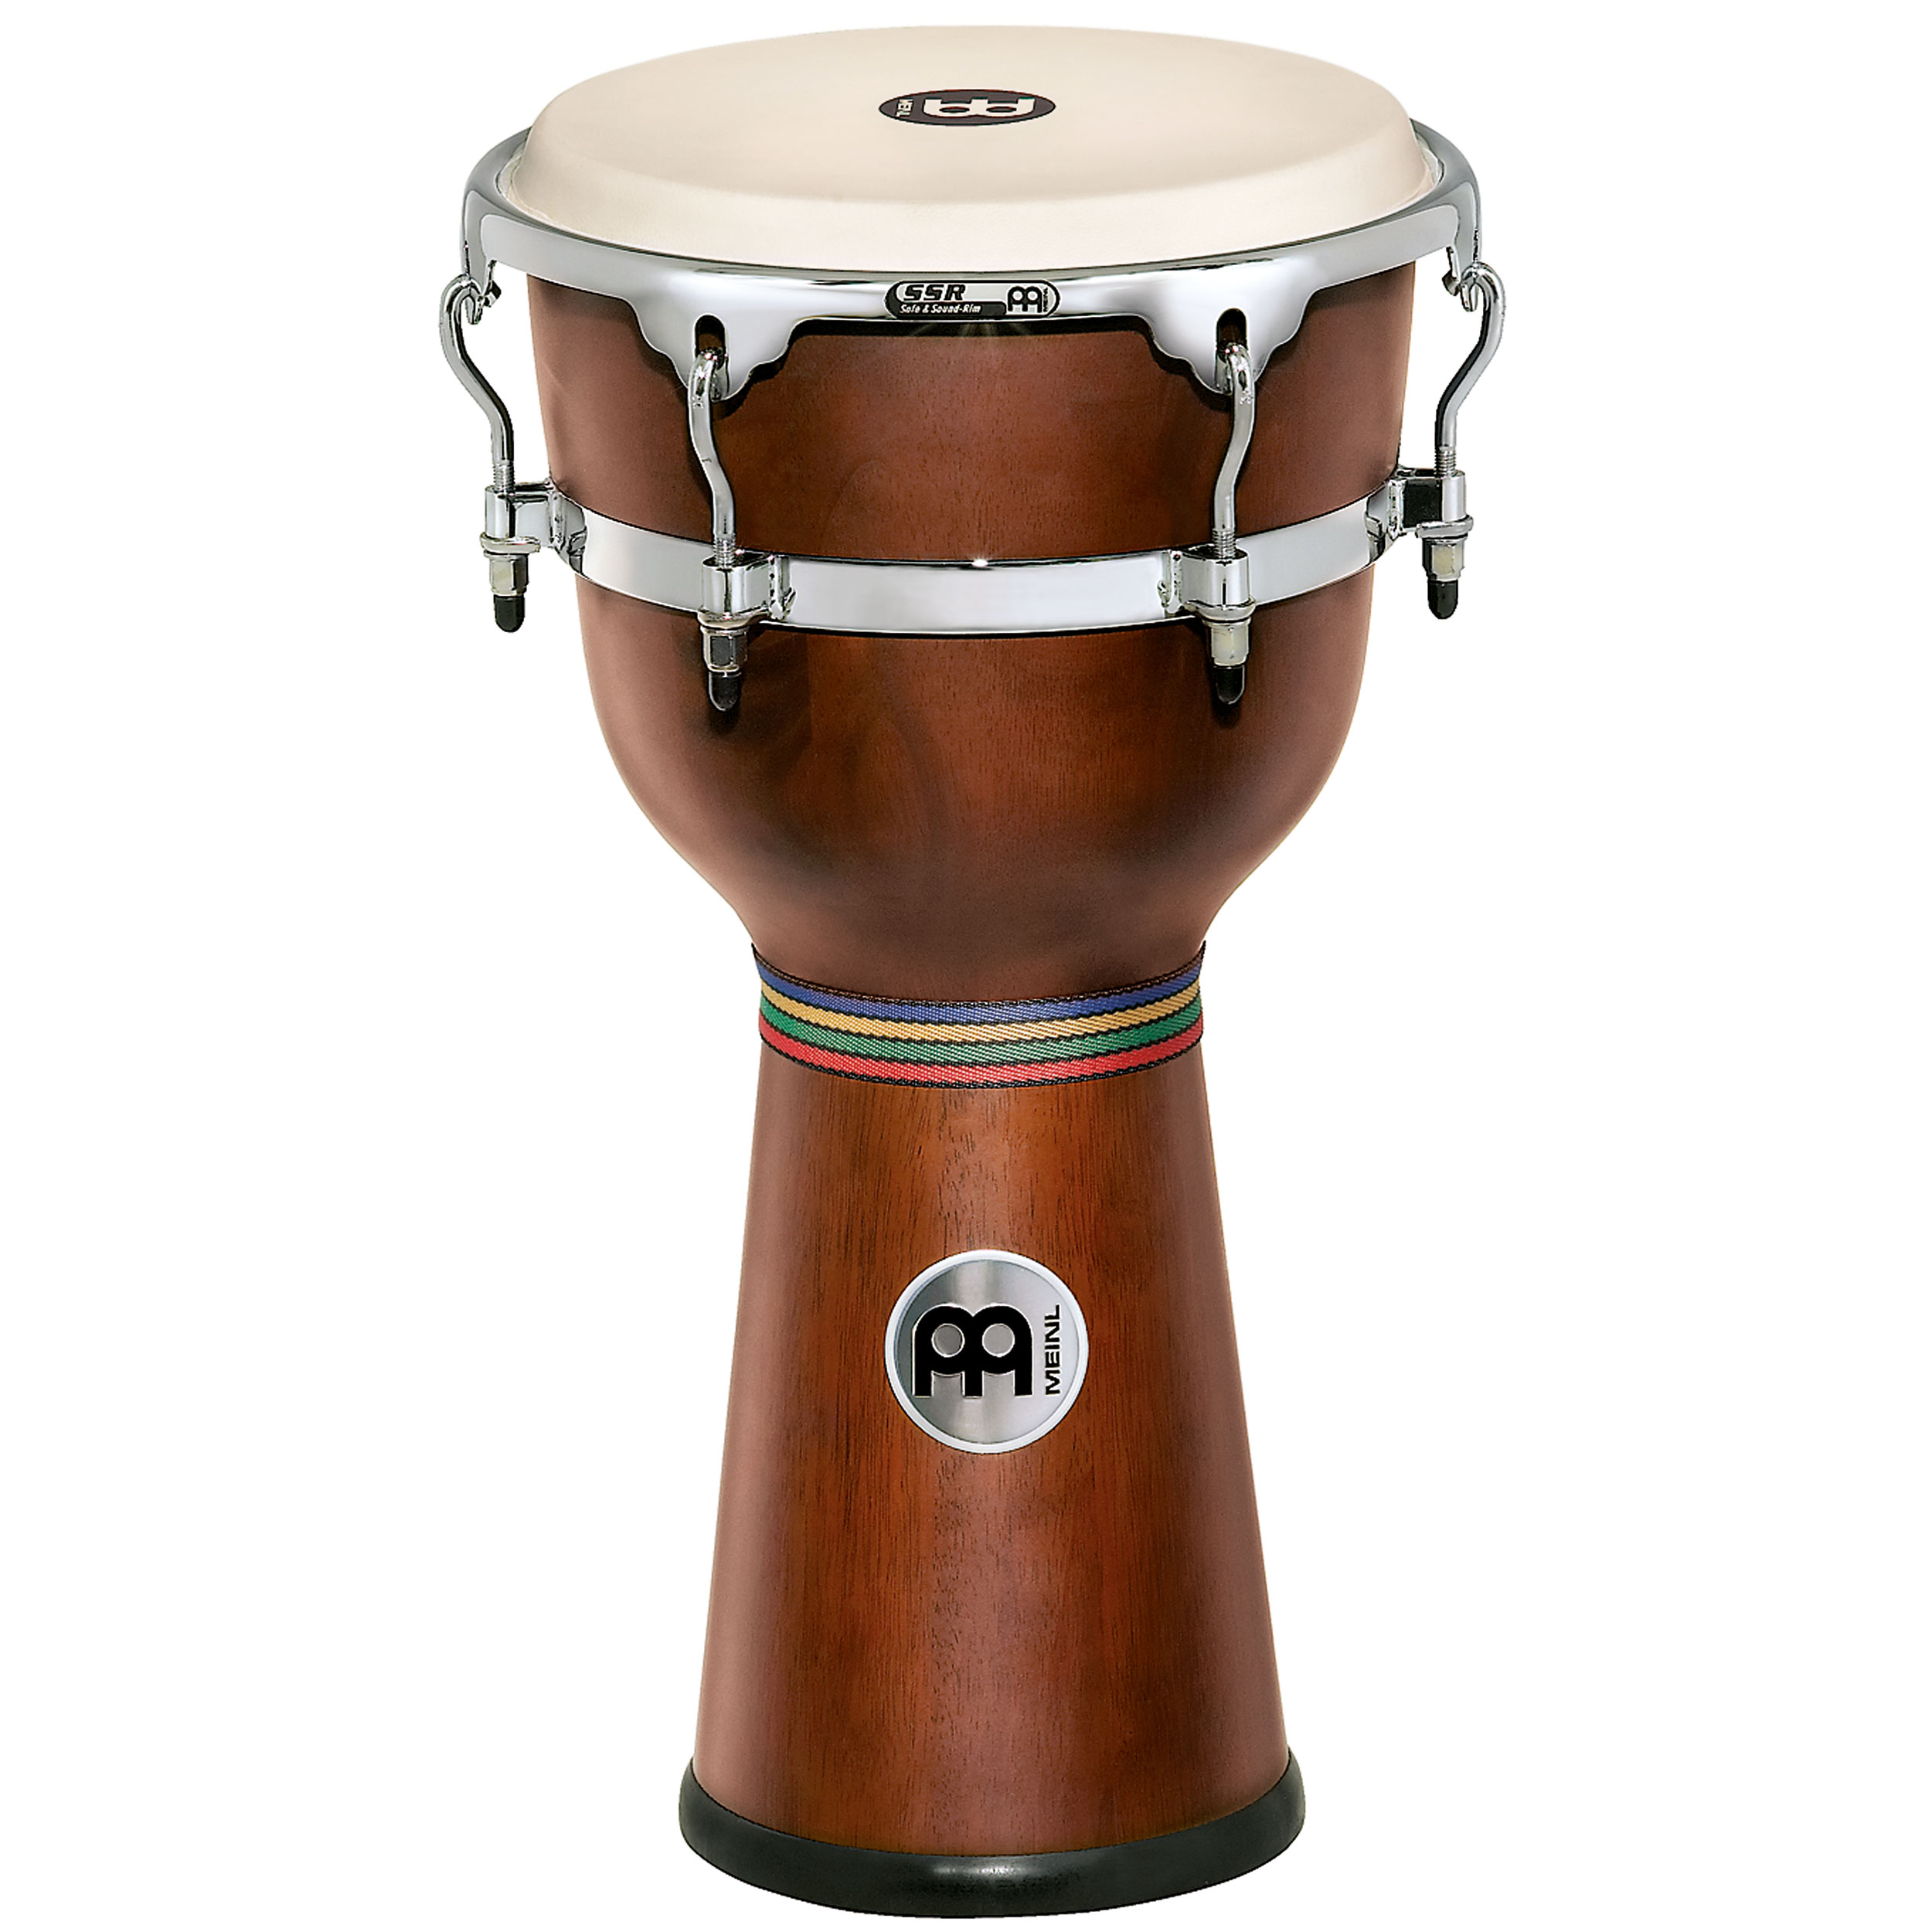 "Meinl 12"" x 24 1/4"" Floatune Wood Djembe in African Brown Finish"